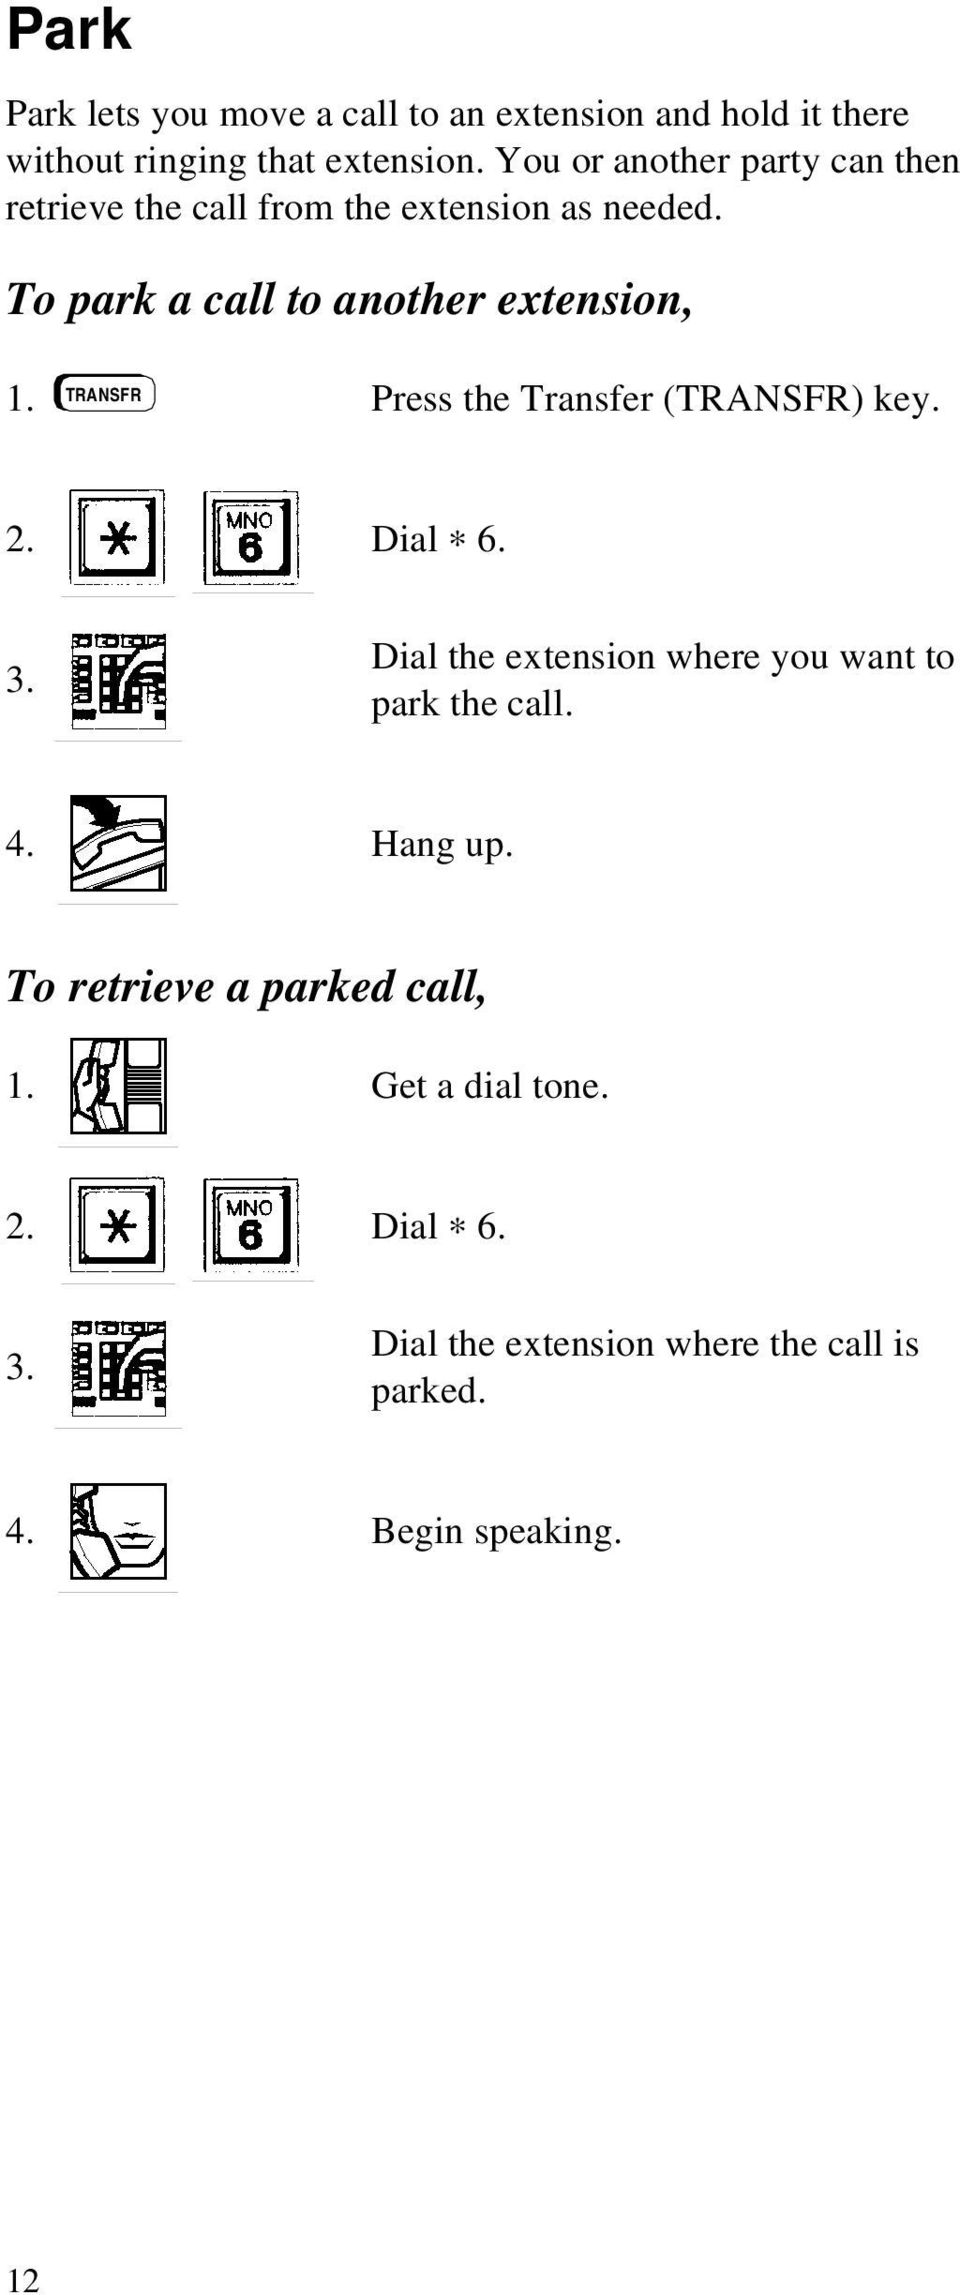 To park a call to another extension, 1. TRANSFR Press the Transfer (TRANSFR) key. 2. Dial 6. 3.